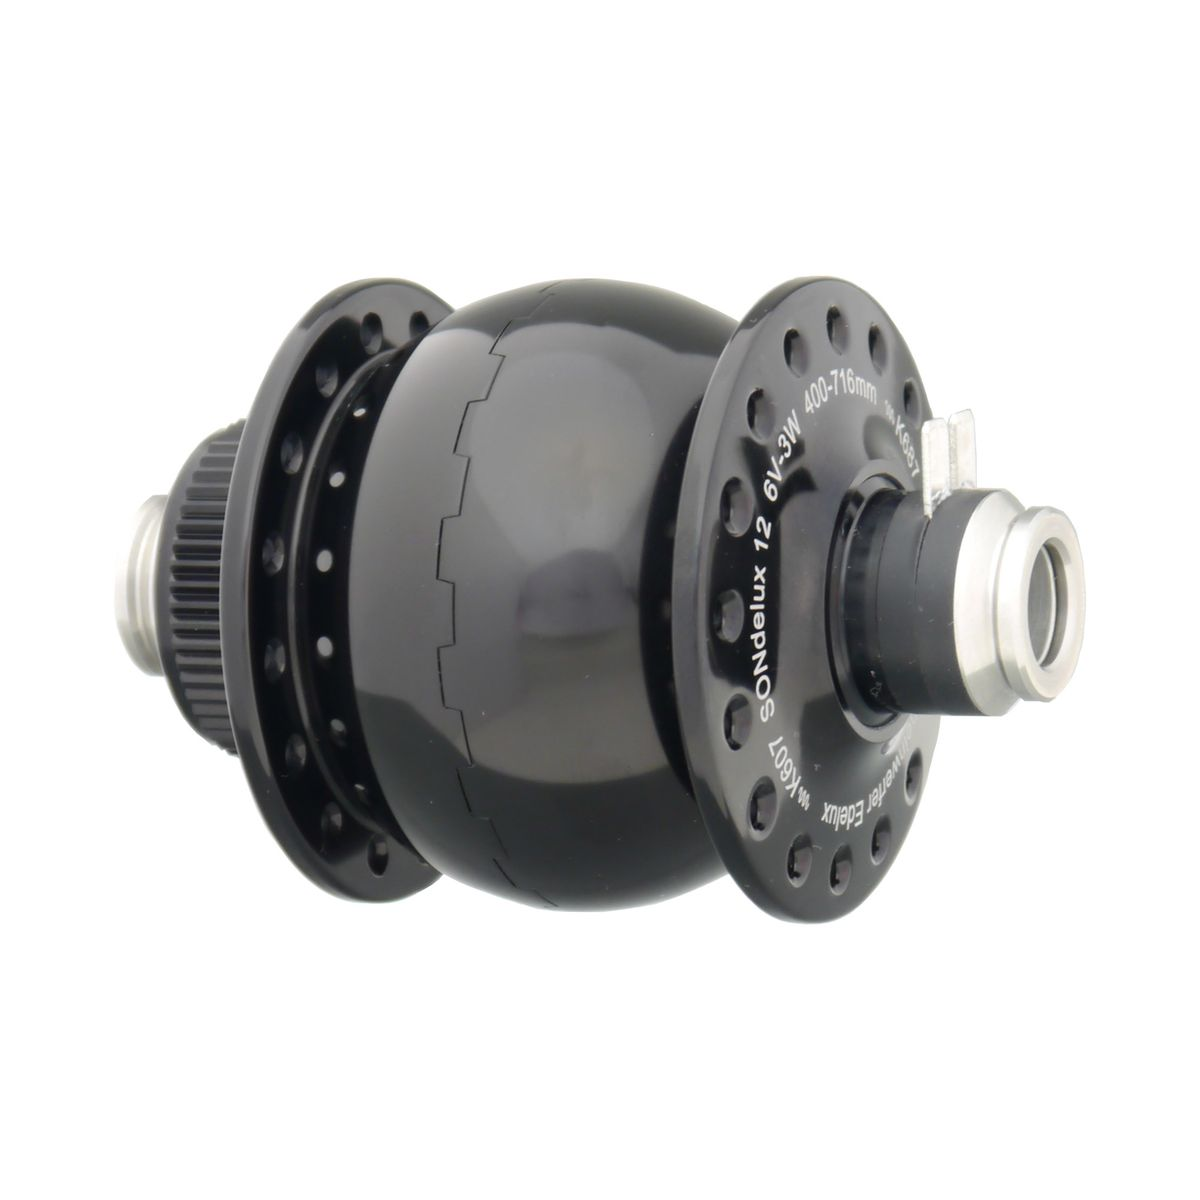 SONdelux hub dynamo for 12 mm thru axle